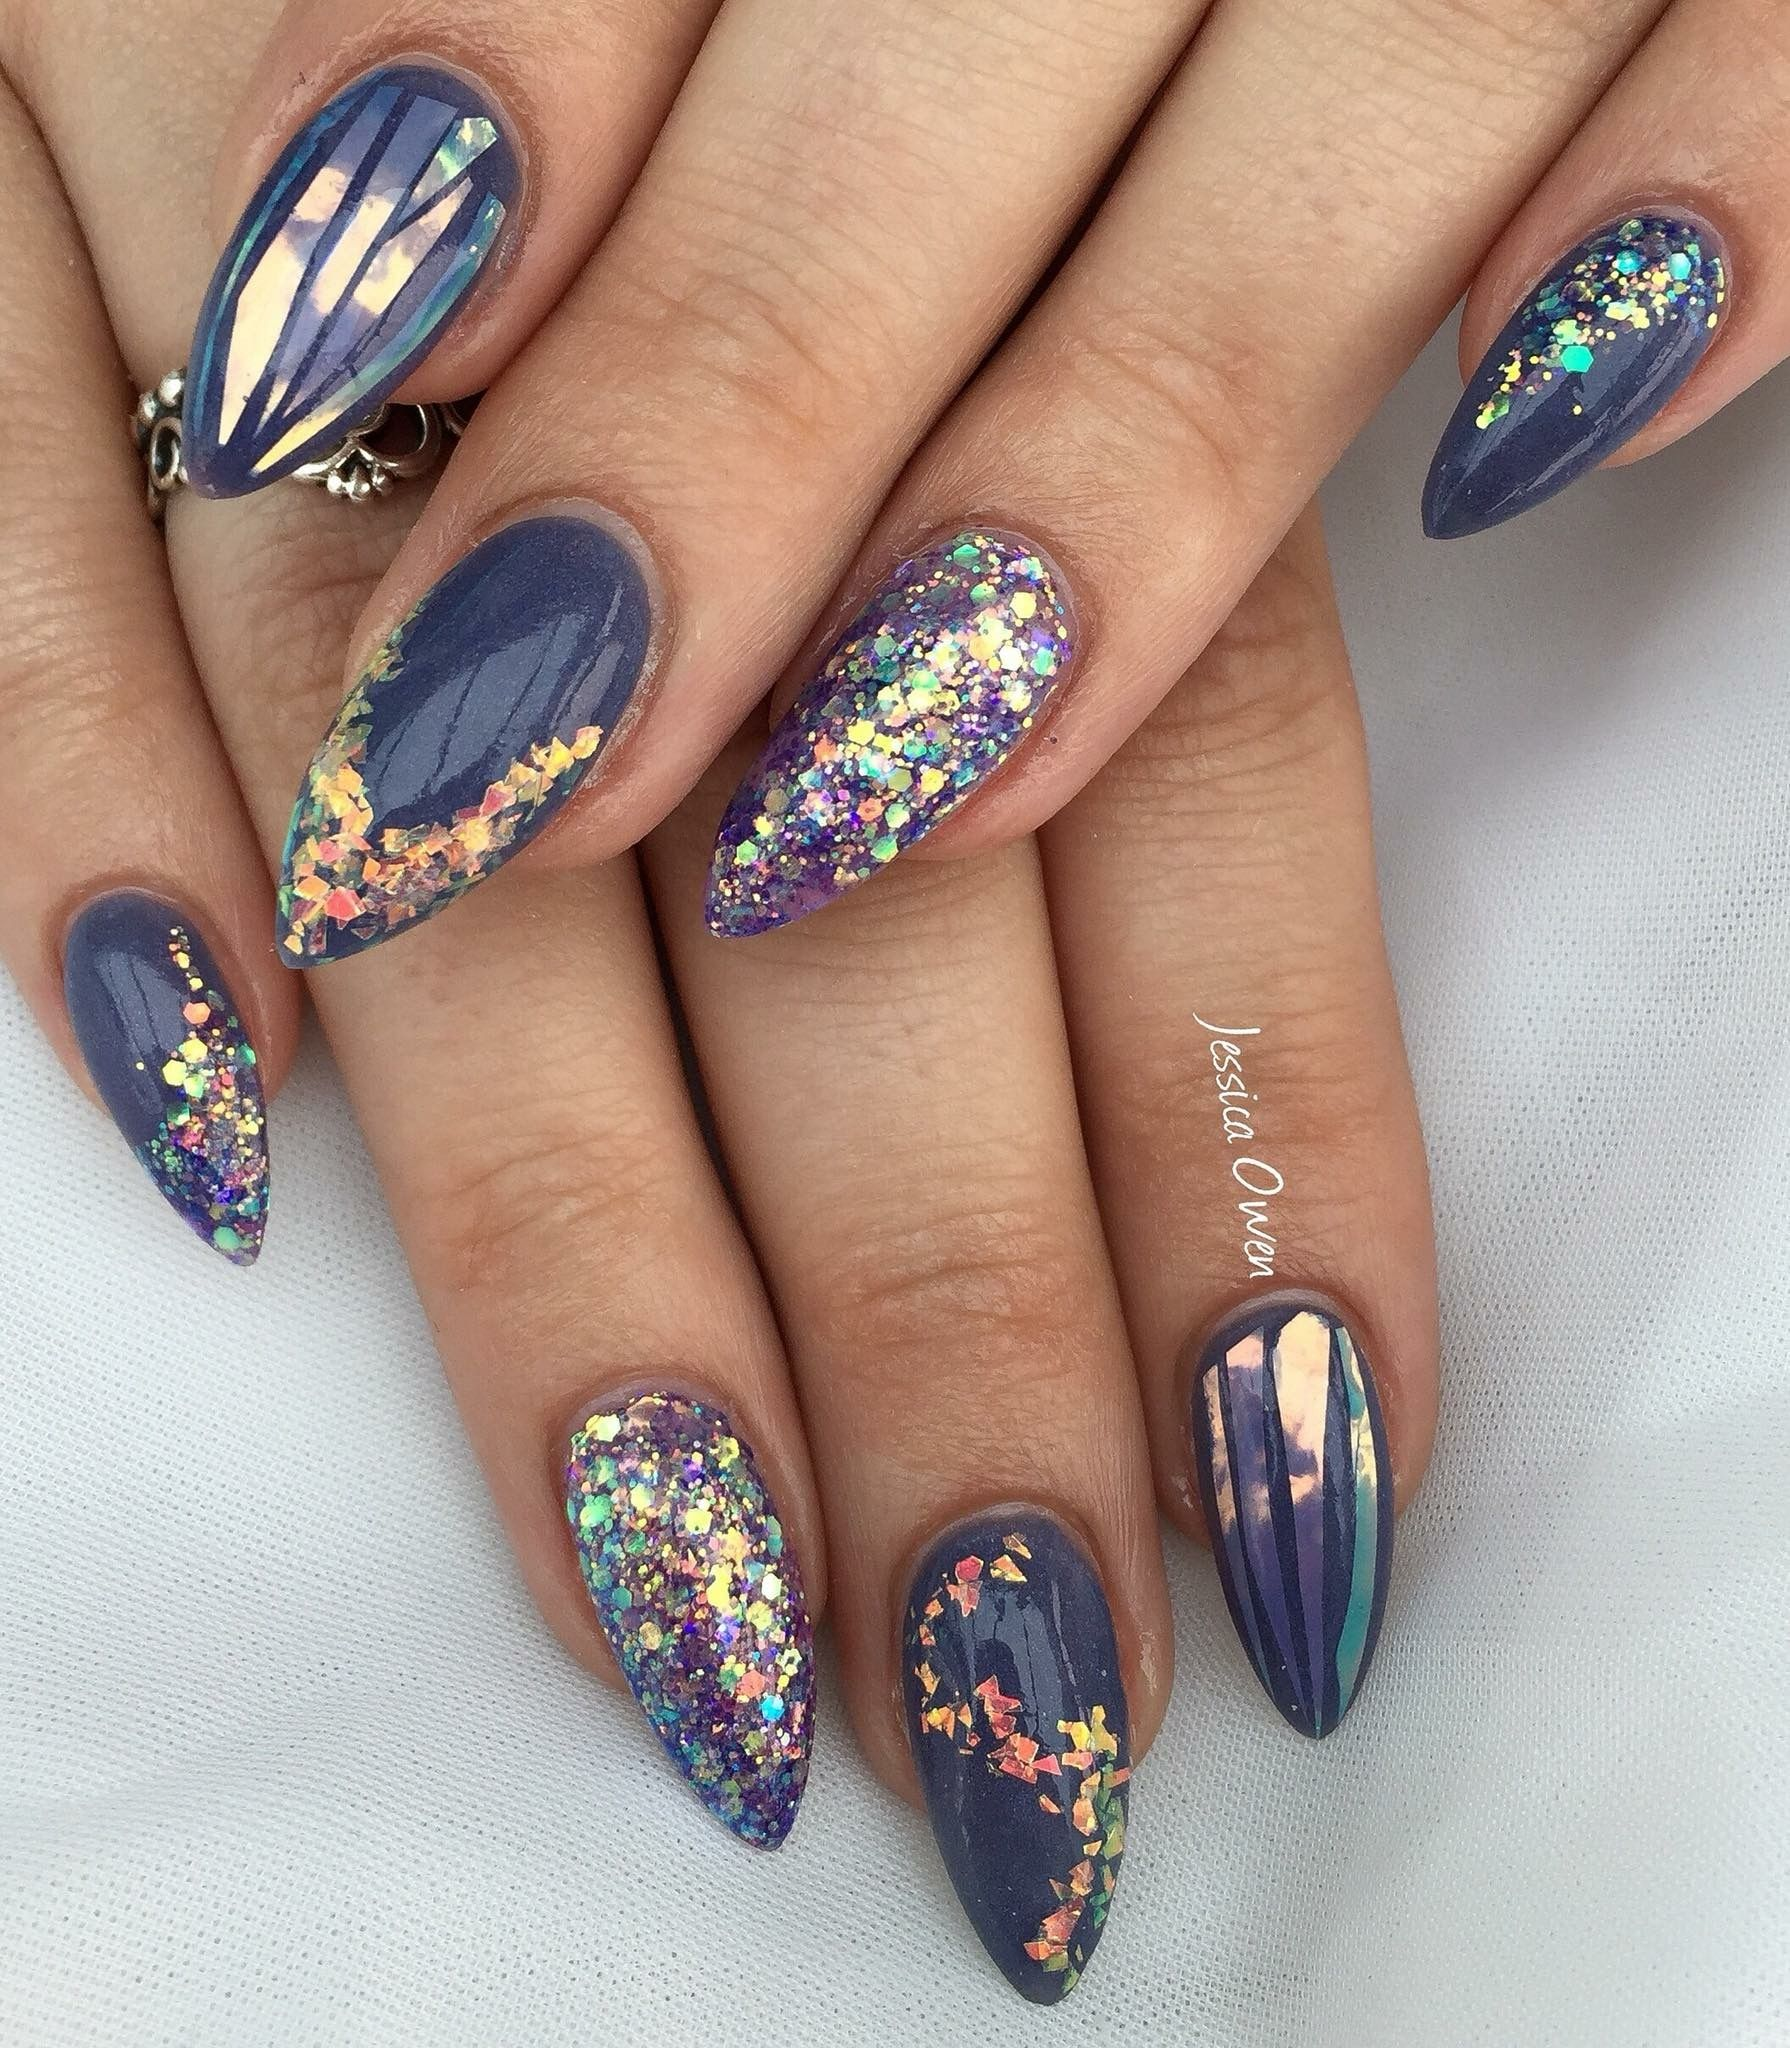 Pin by Alexya on cute nails in 2020 | Matte nails design